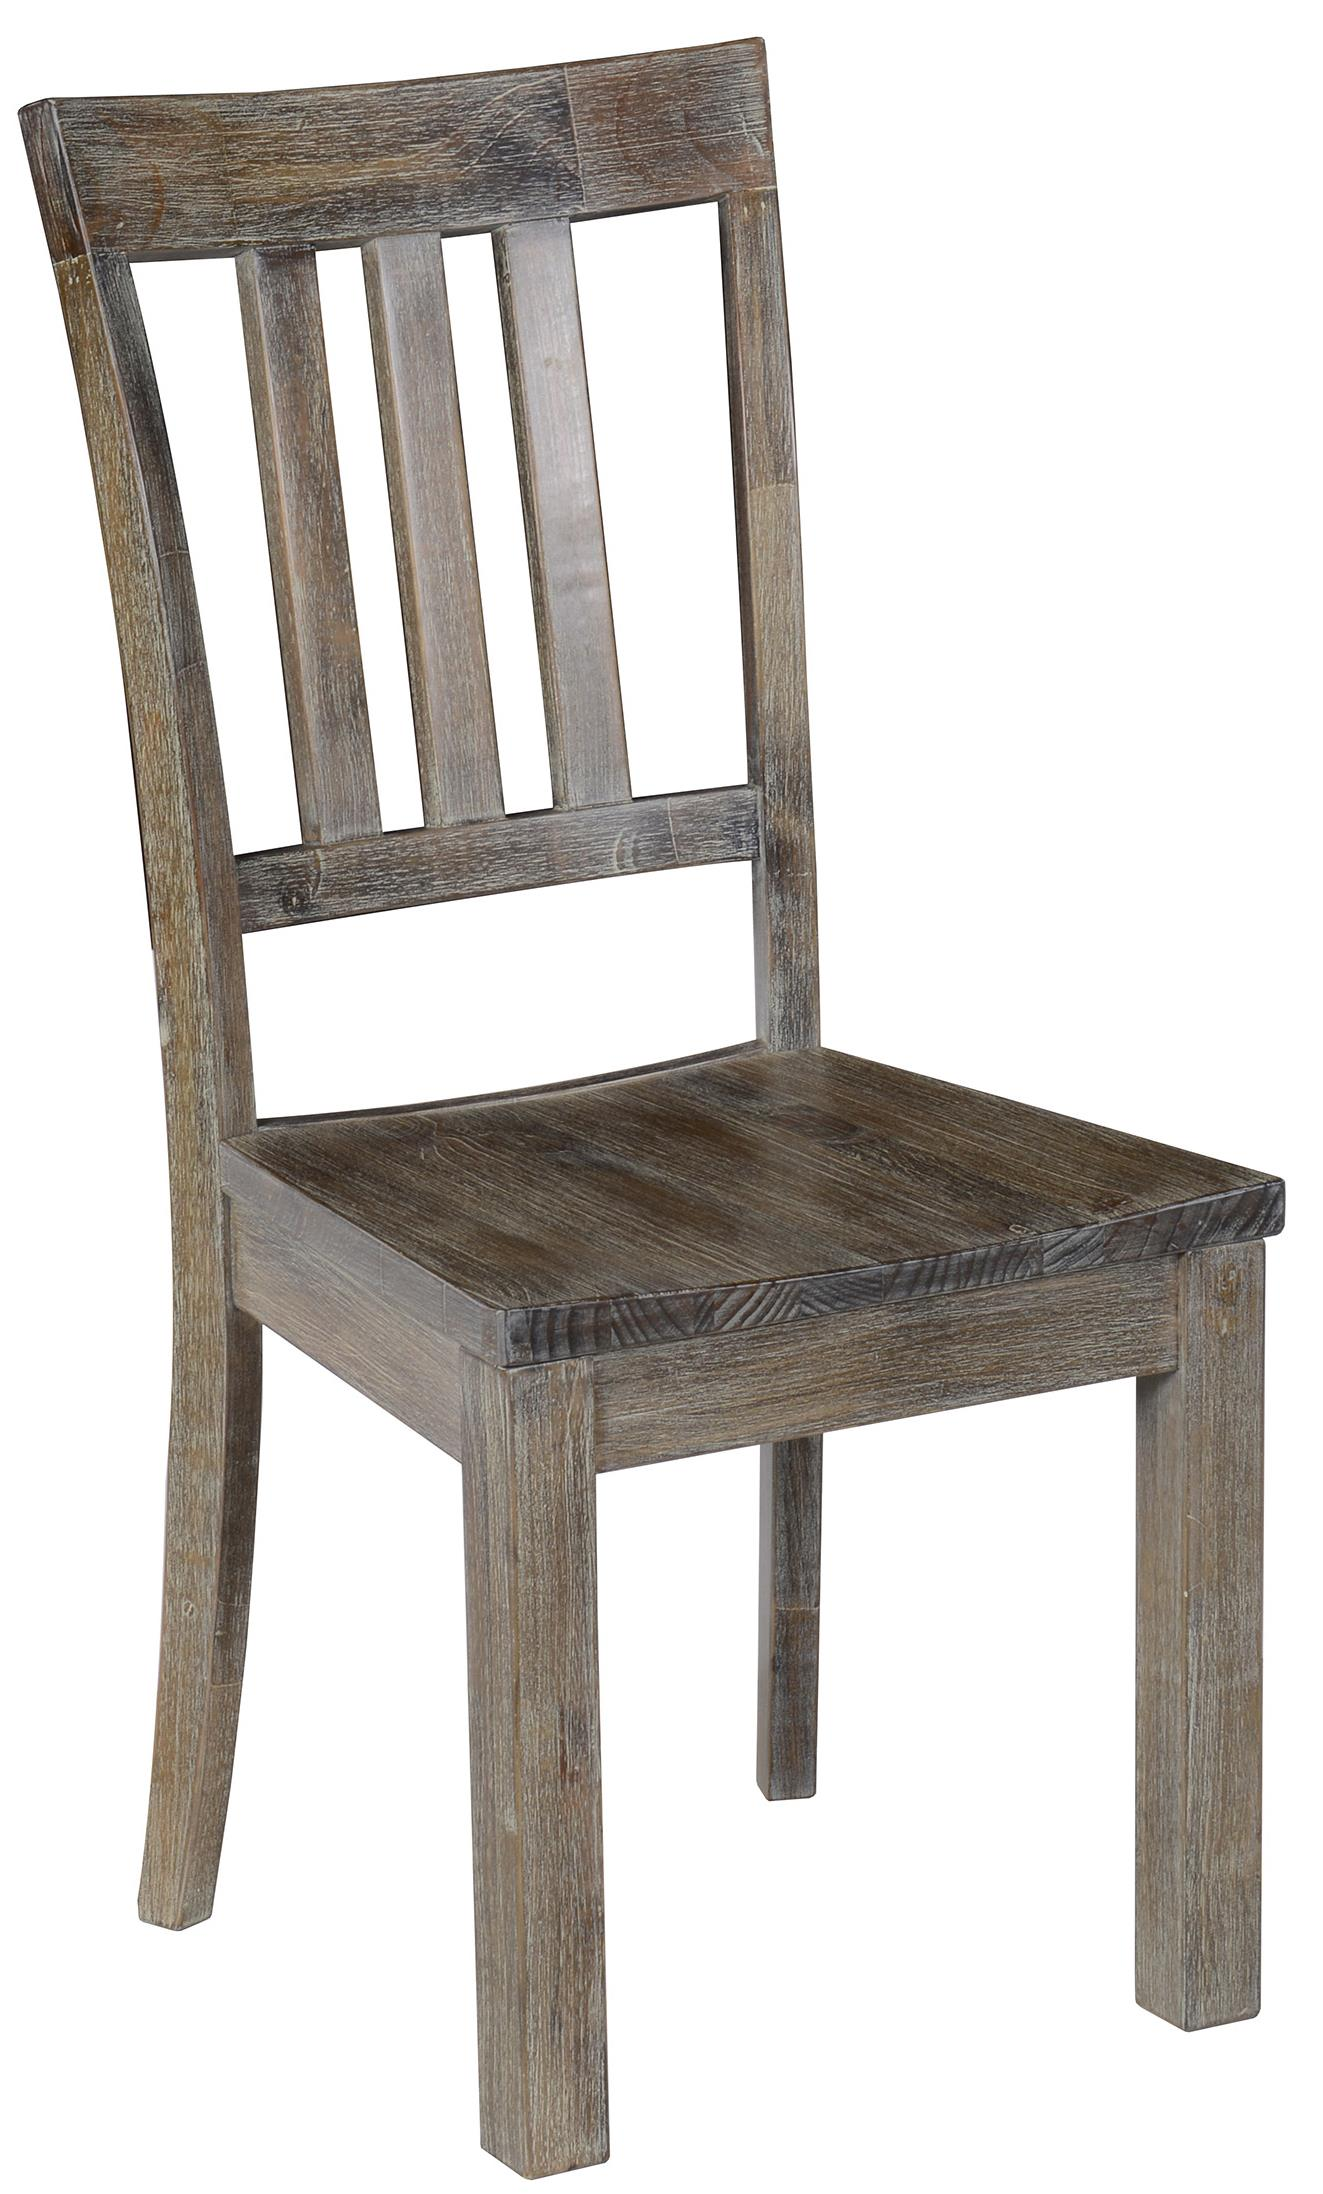 Classic Home Maxwell Dining Side Chair With Vertical Bar Back Jacksonville Furniture Mart